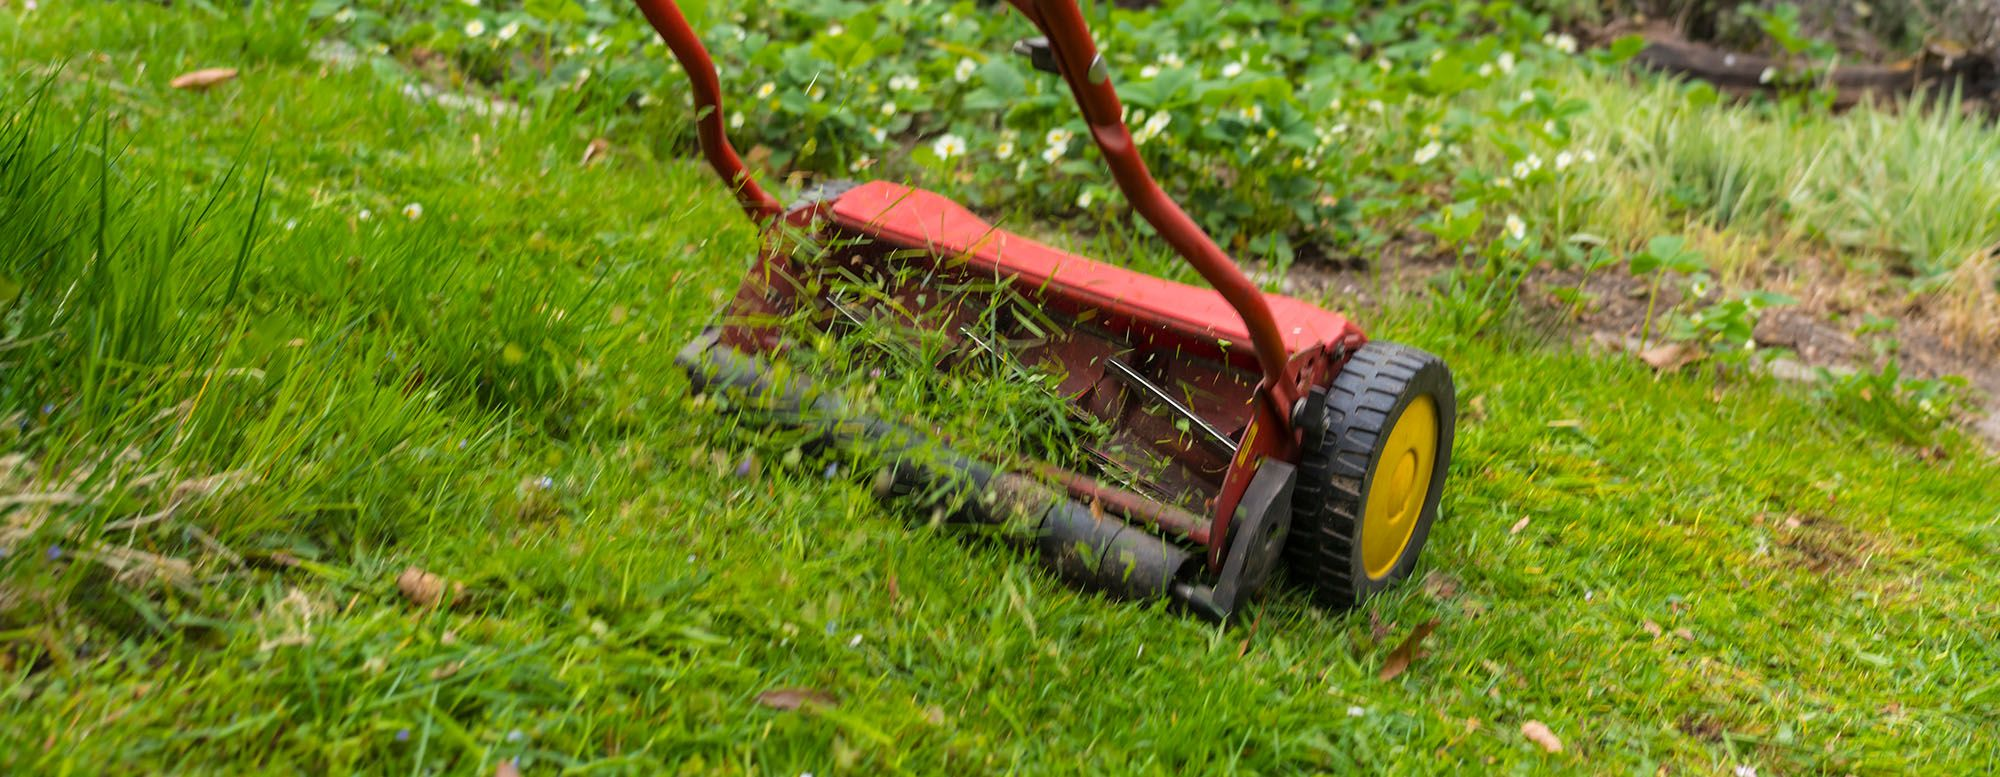 Someone pushing lawn mover in backyard on green grass.